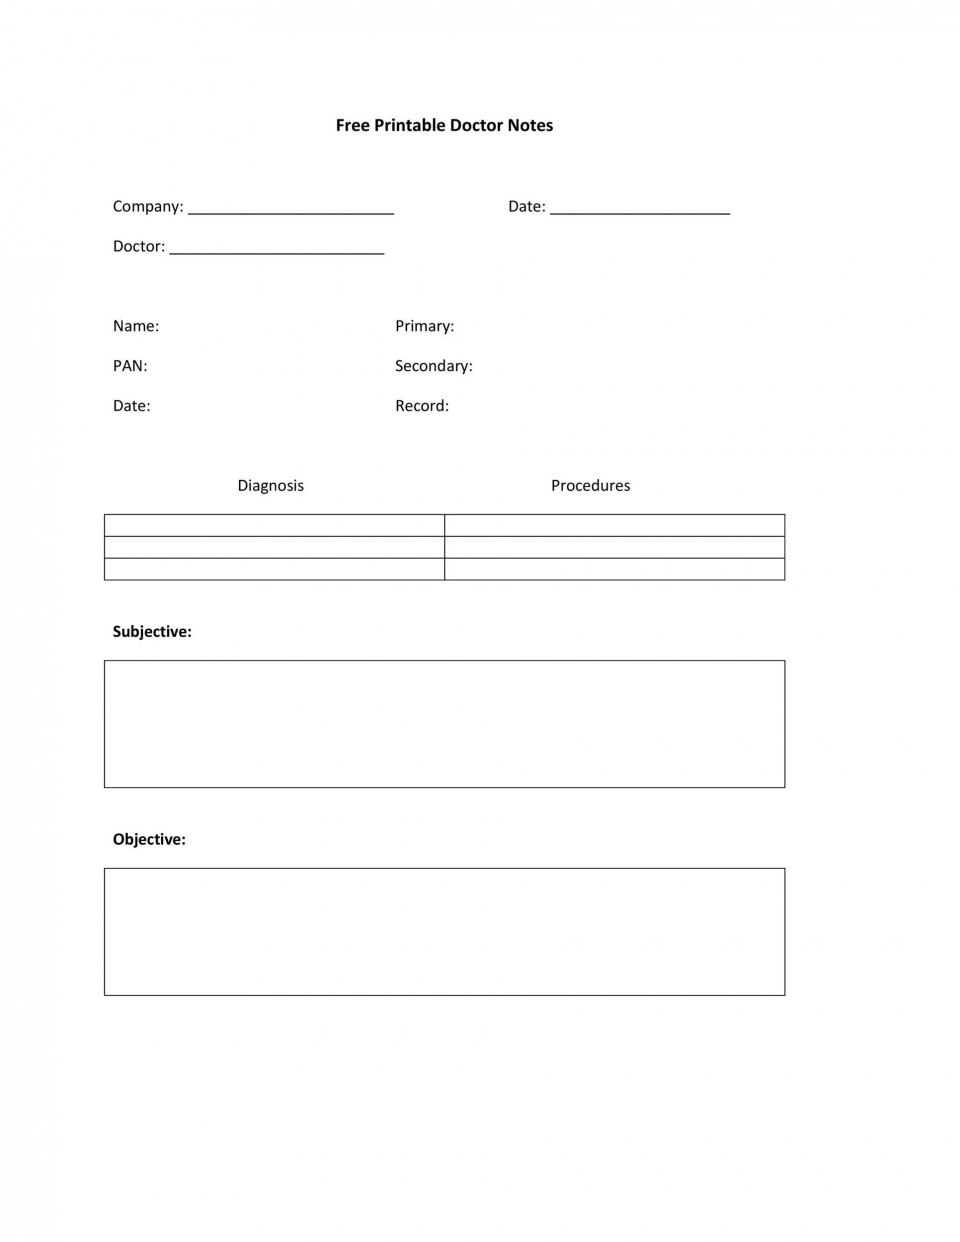 005 Fascinating Doctor Note Template Free Download Idea  Fake960